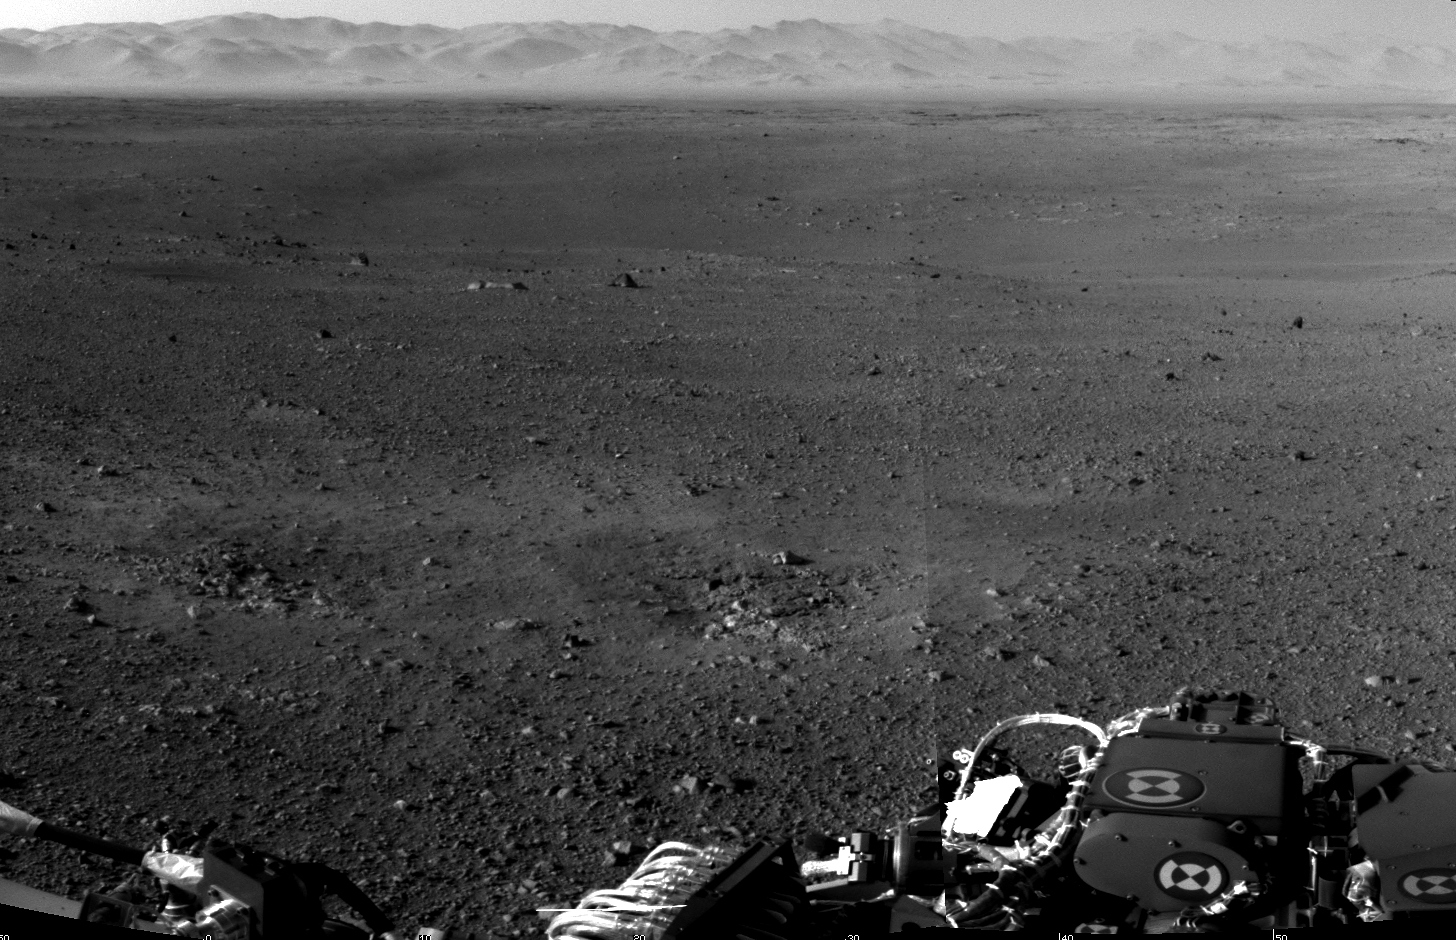 Rover image from Mars